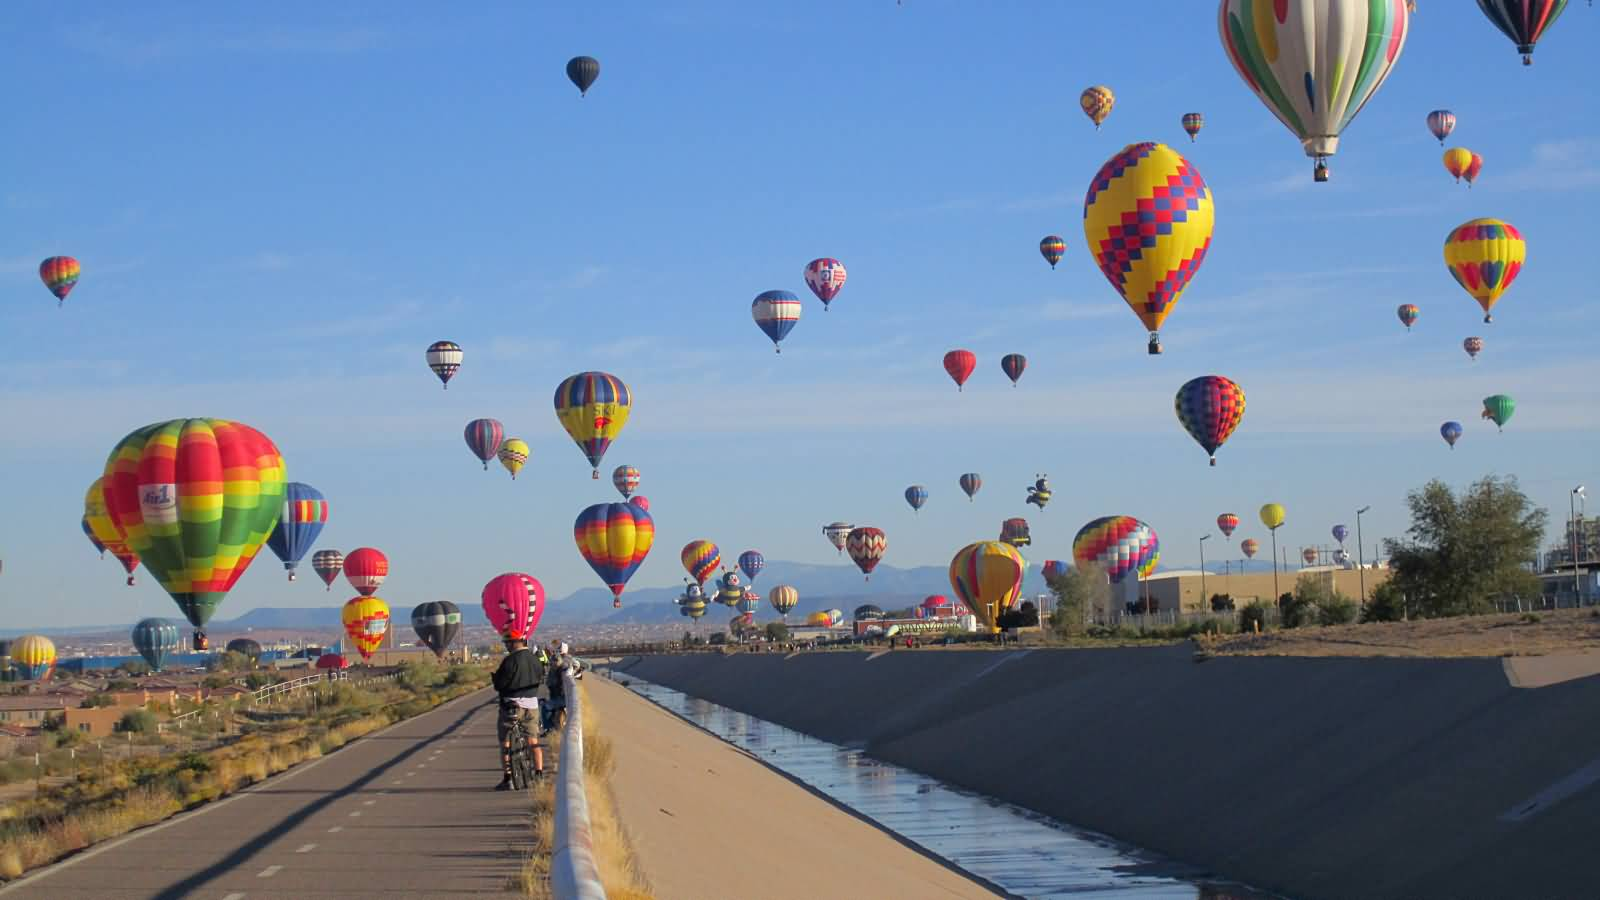 Beautiful-Air-Balloons-At-The-Albuquerque-Balloon-Festival